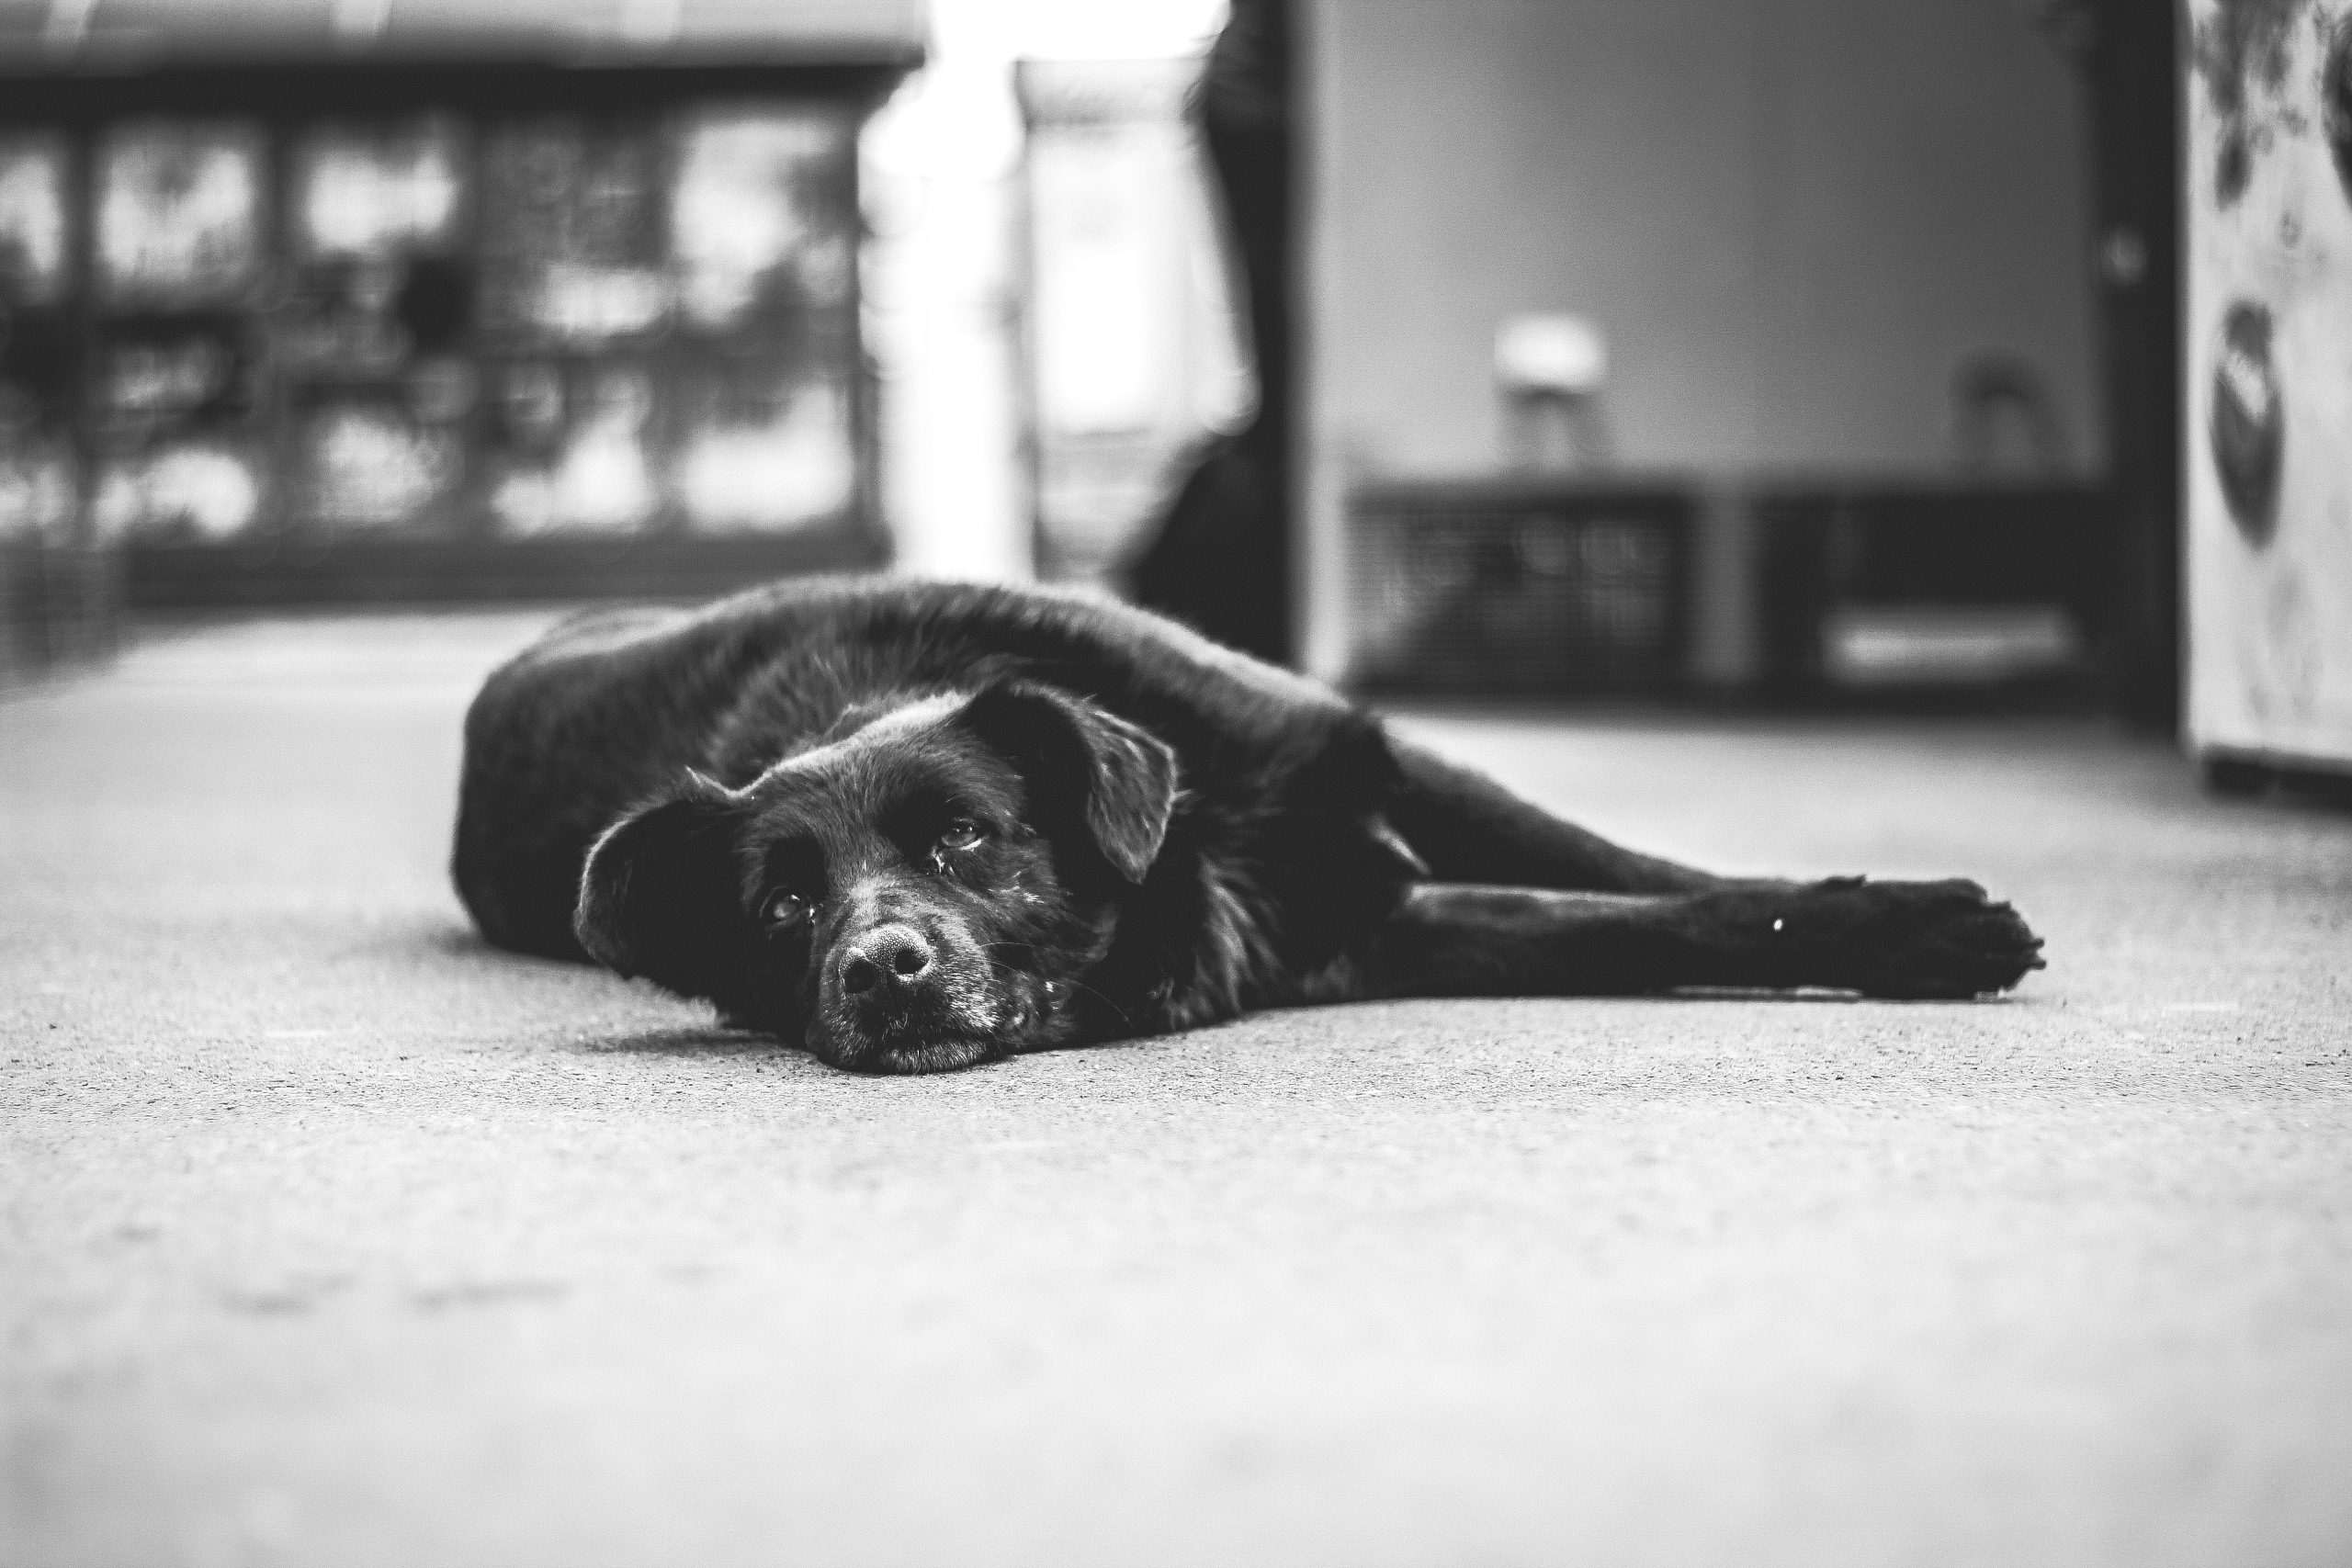 What's A Christian View on Pet Euthanasia?